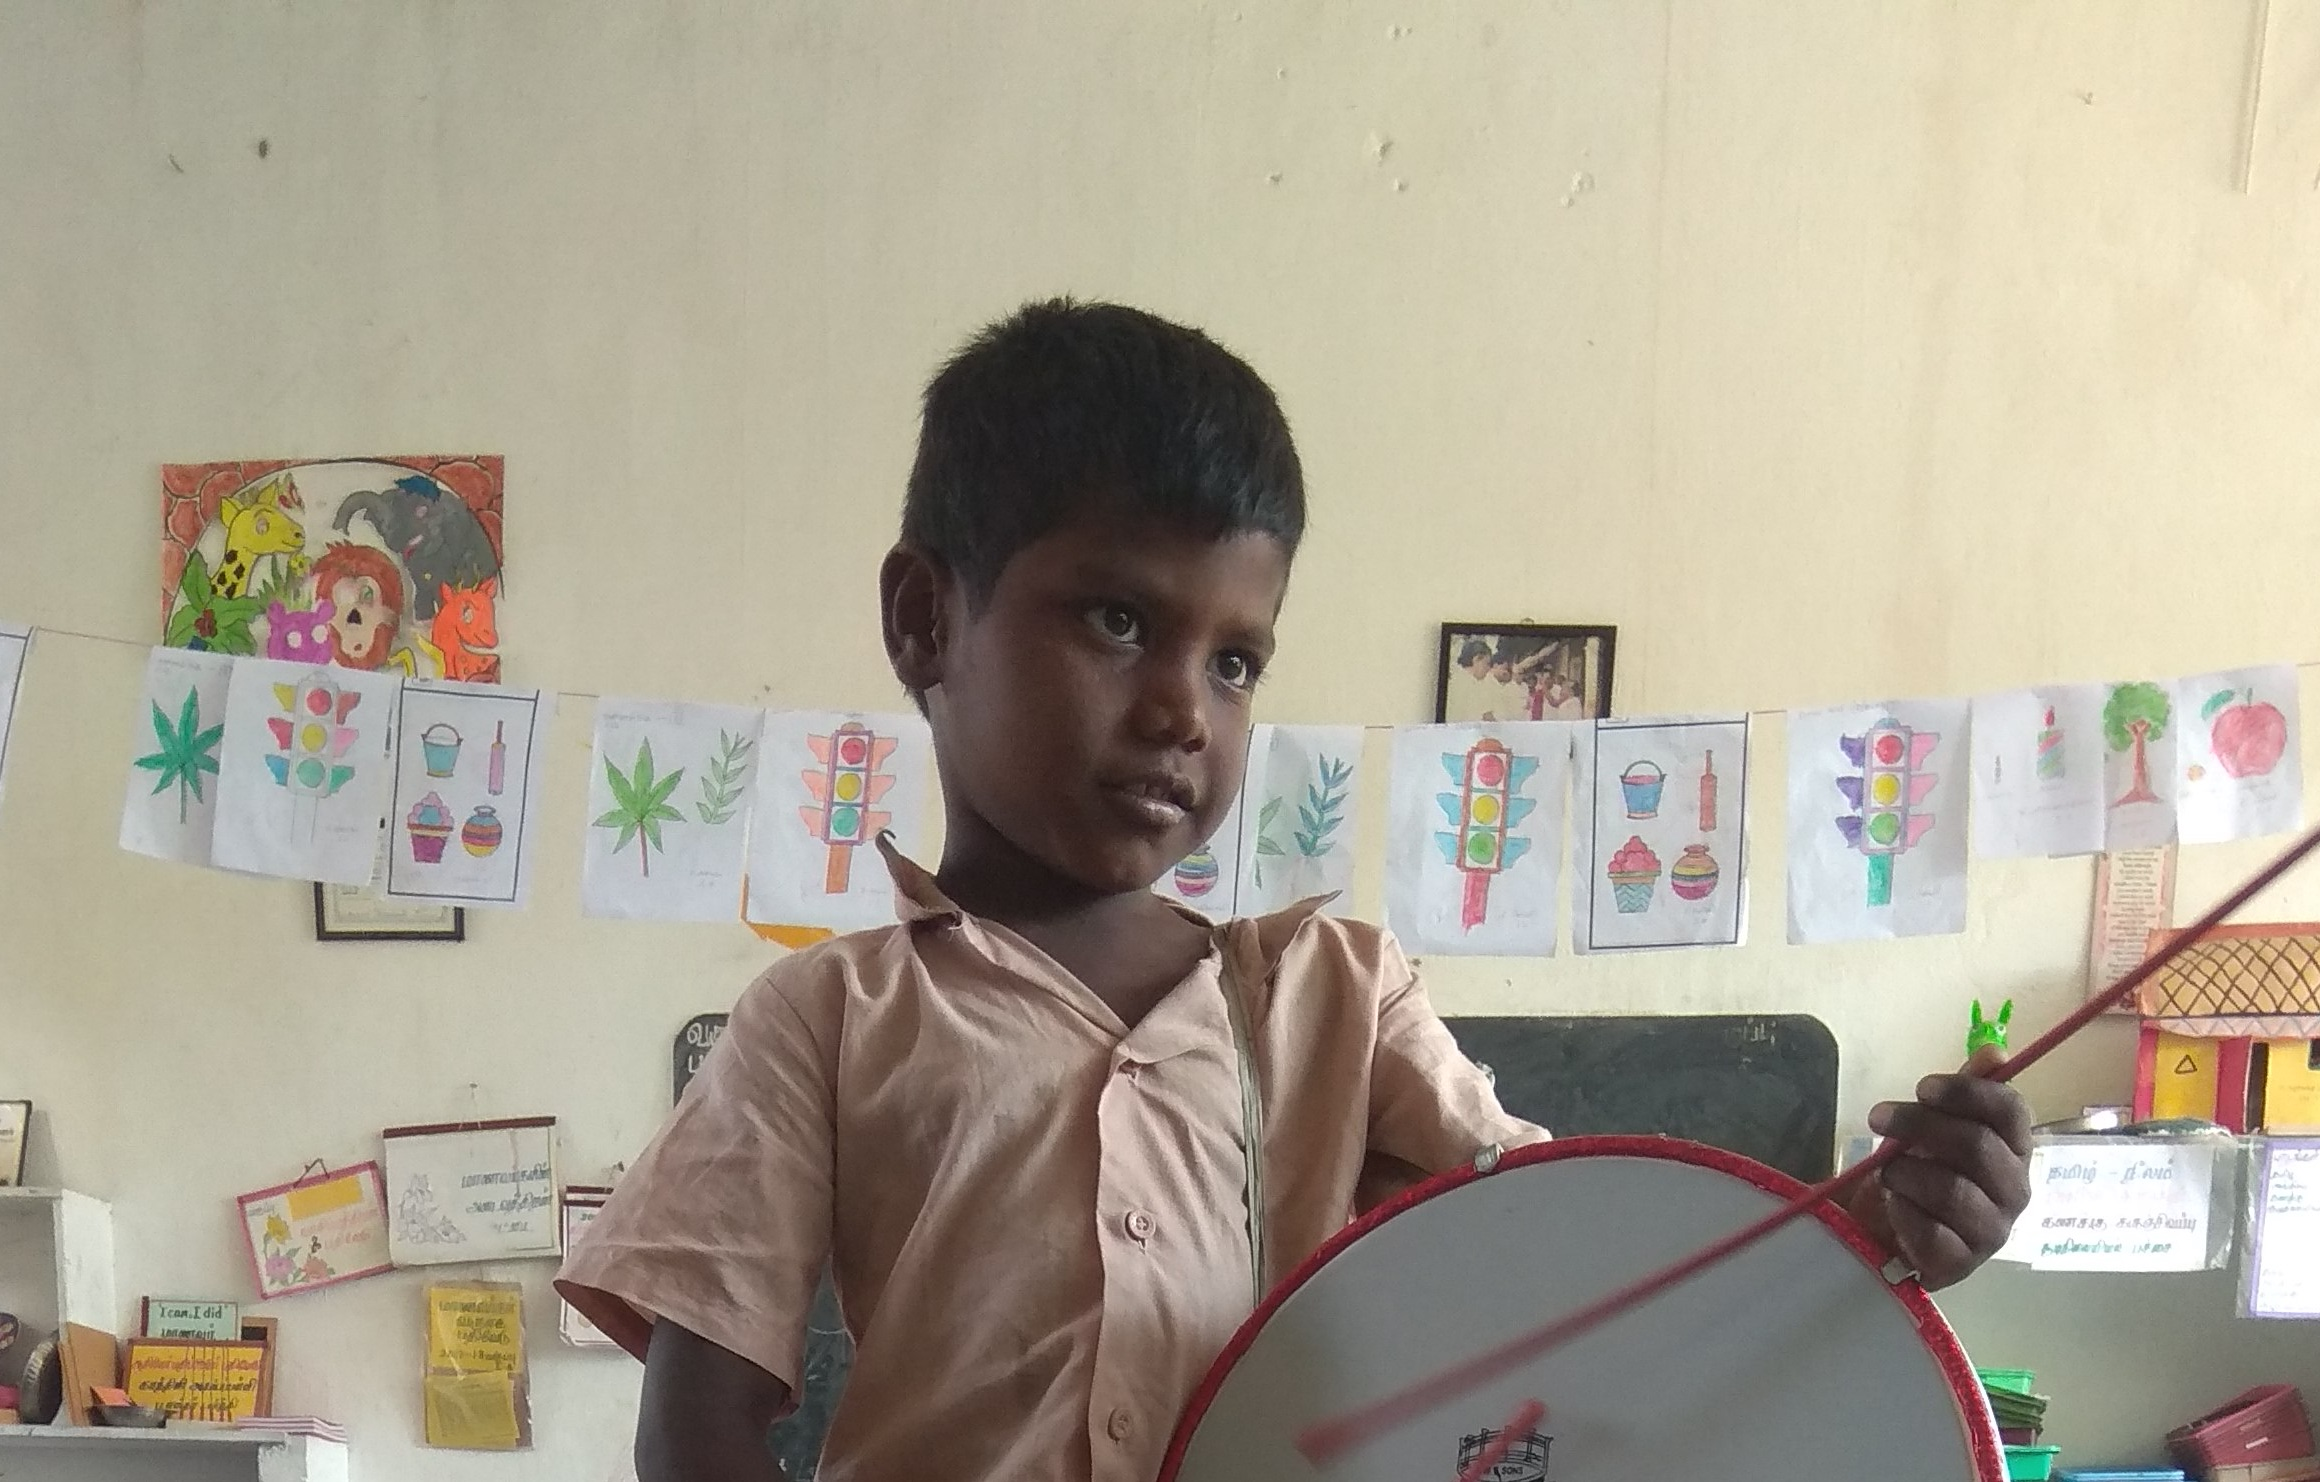 How a Dalit Woman Used Education to Empower Herself and Those Around Her